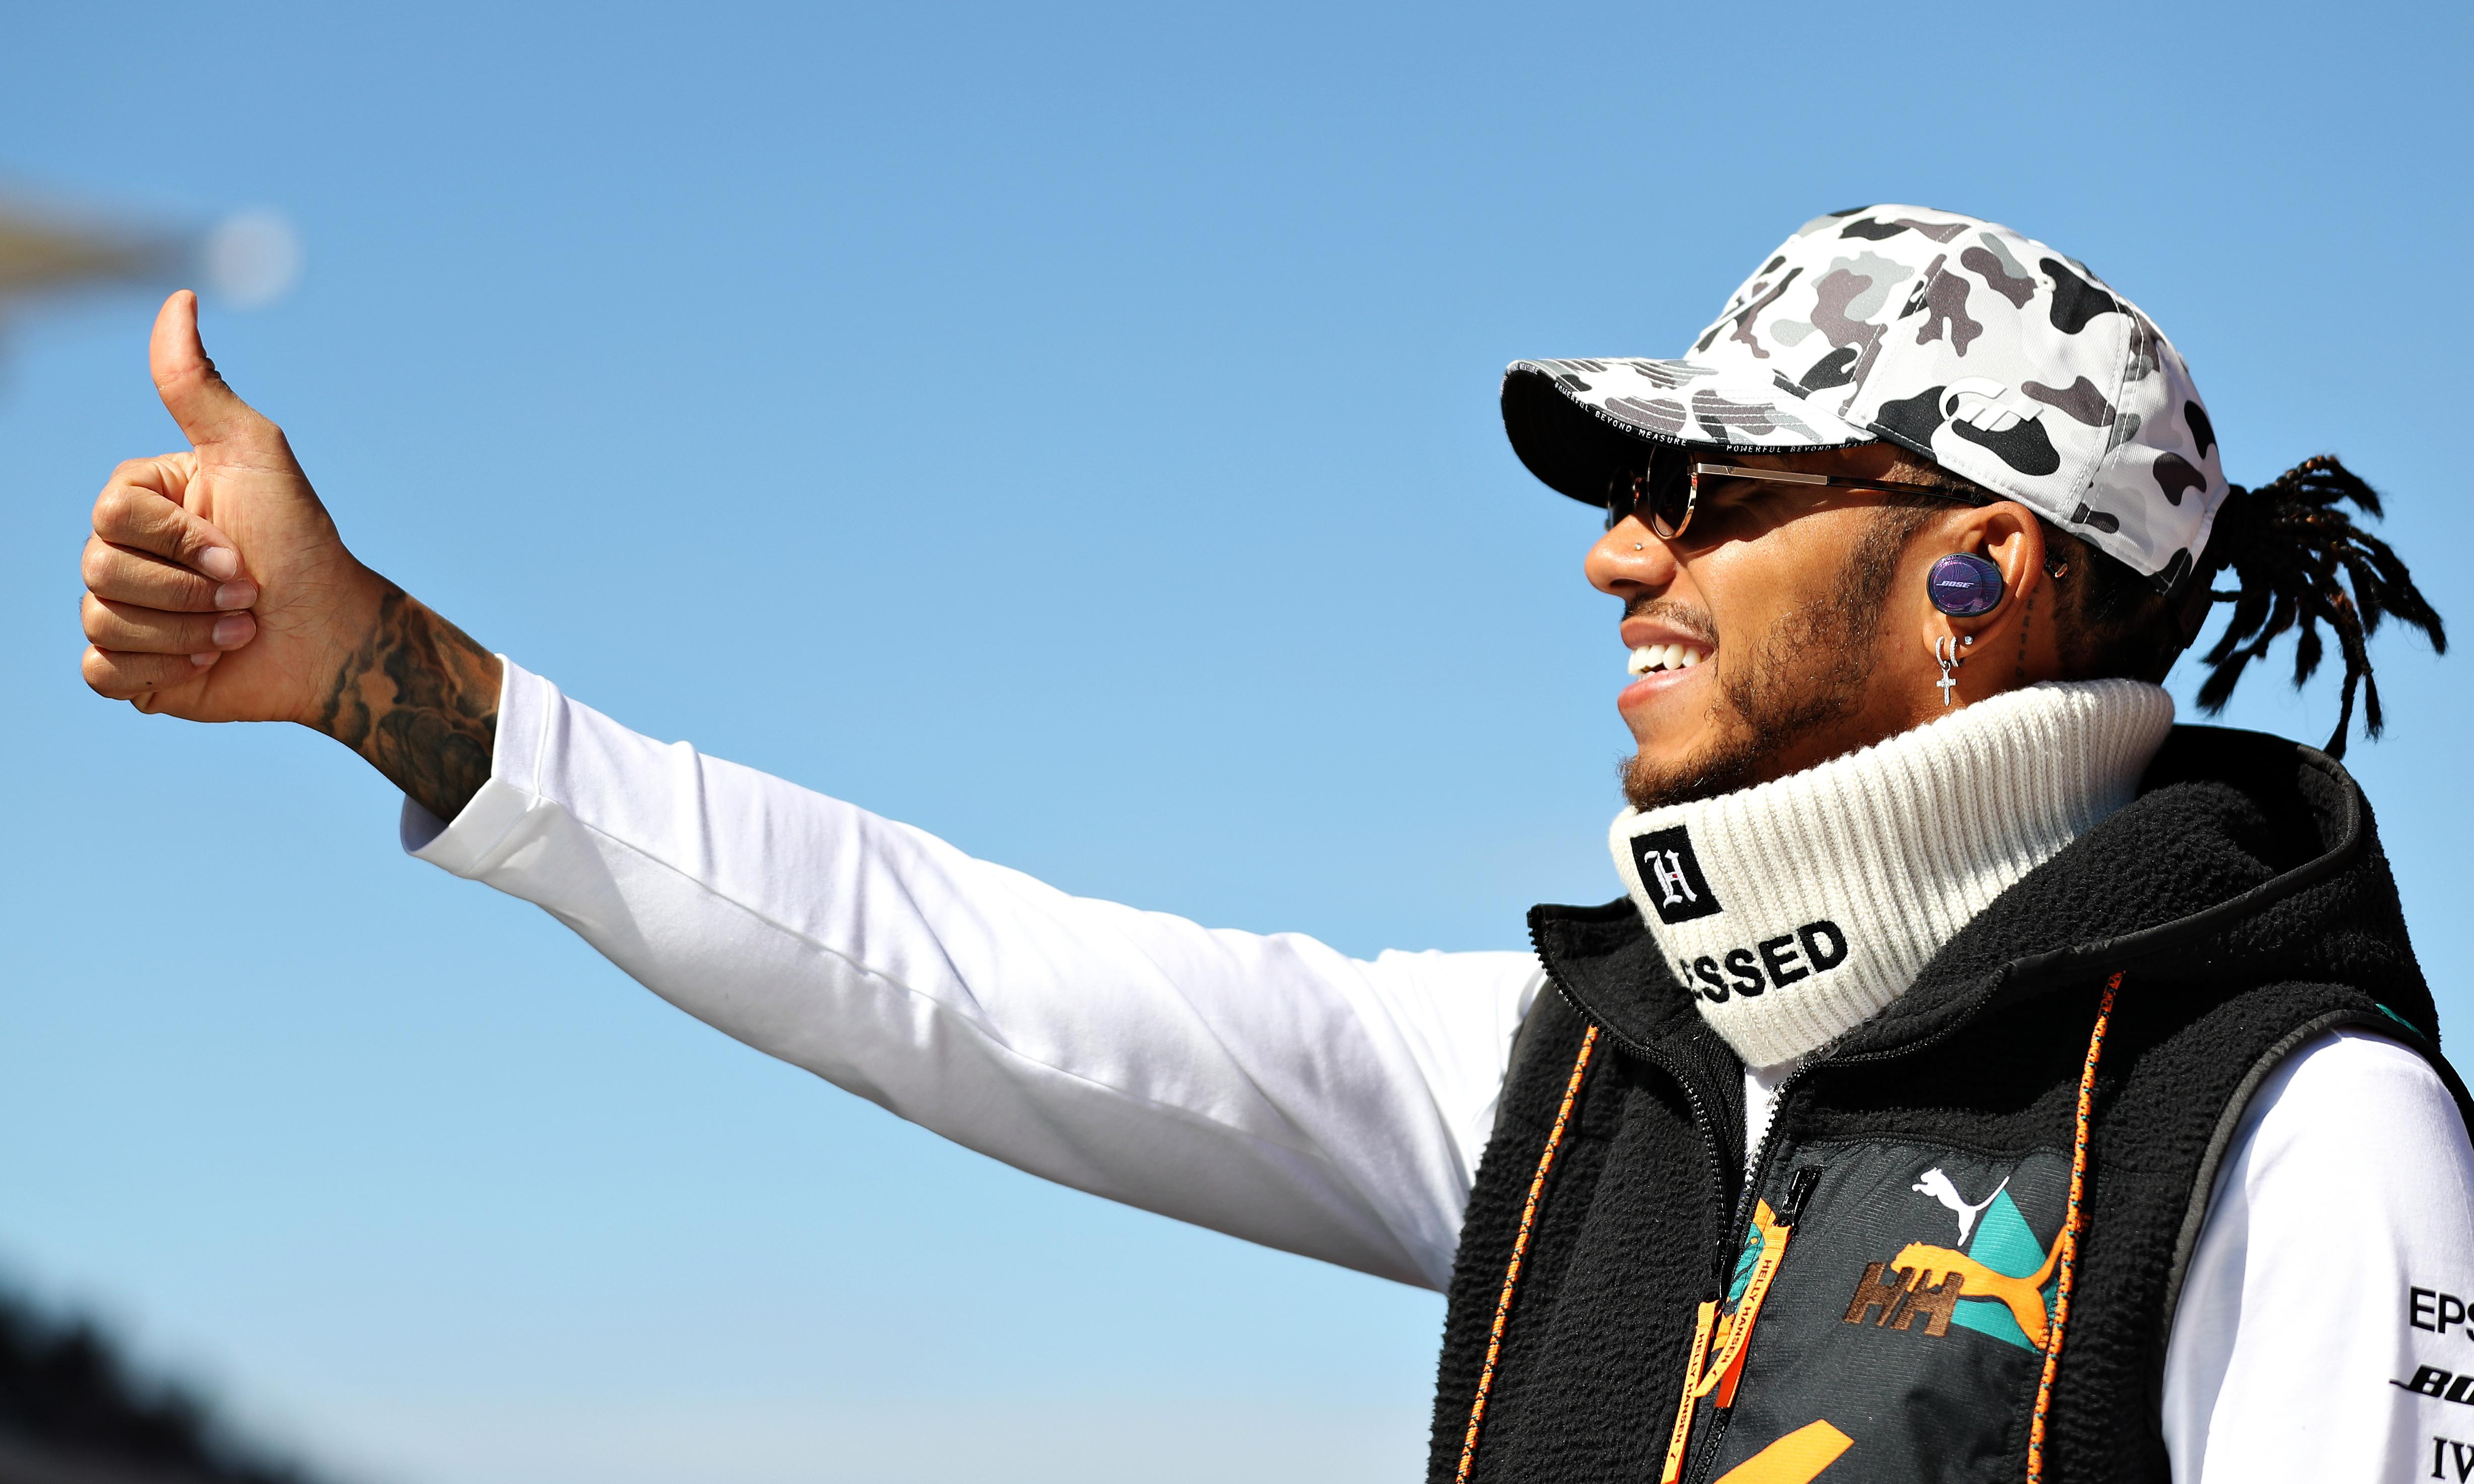 Six-times world champion Lewis Hamilton is the best driver I have seen